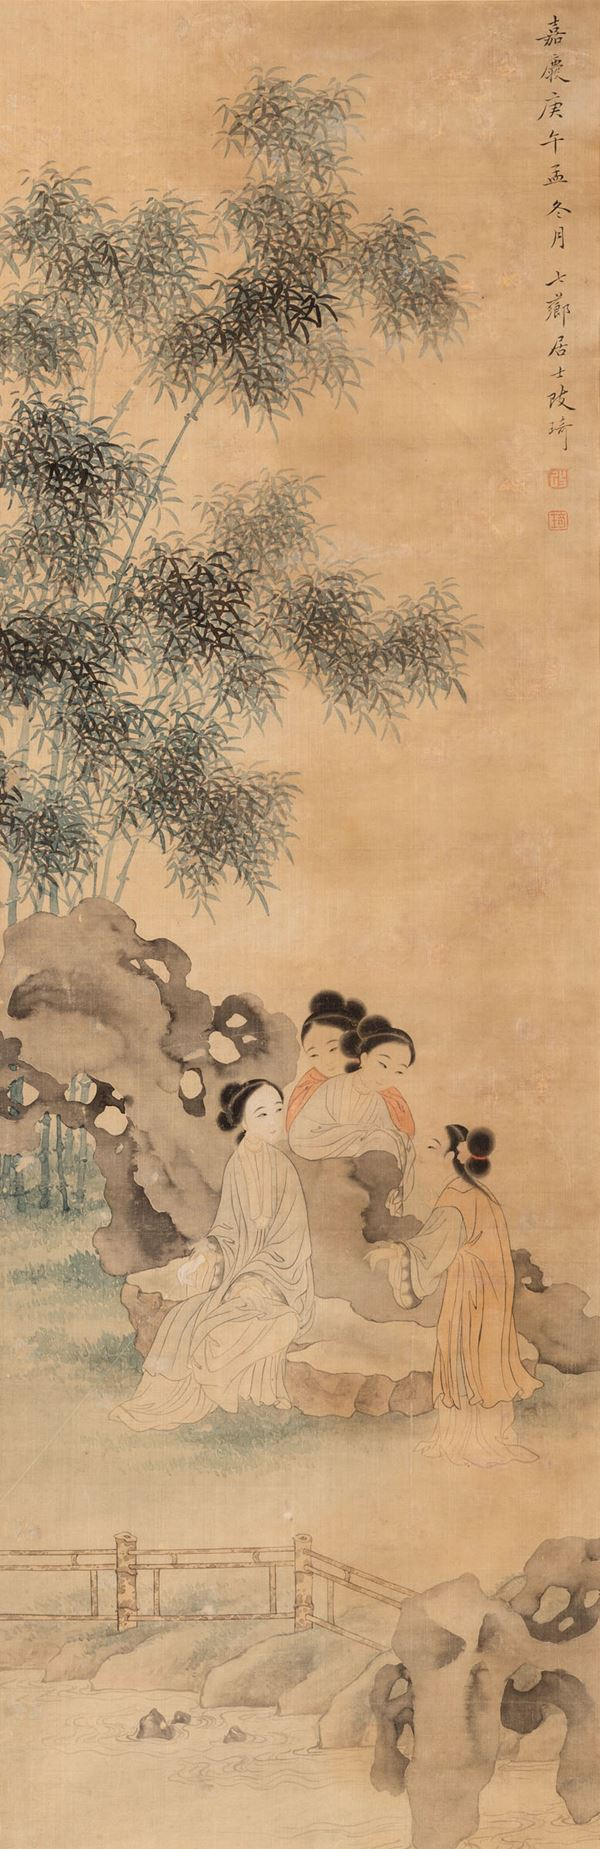 A painting on silk, China, 1900s